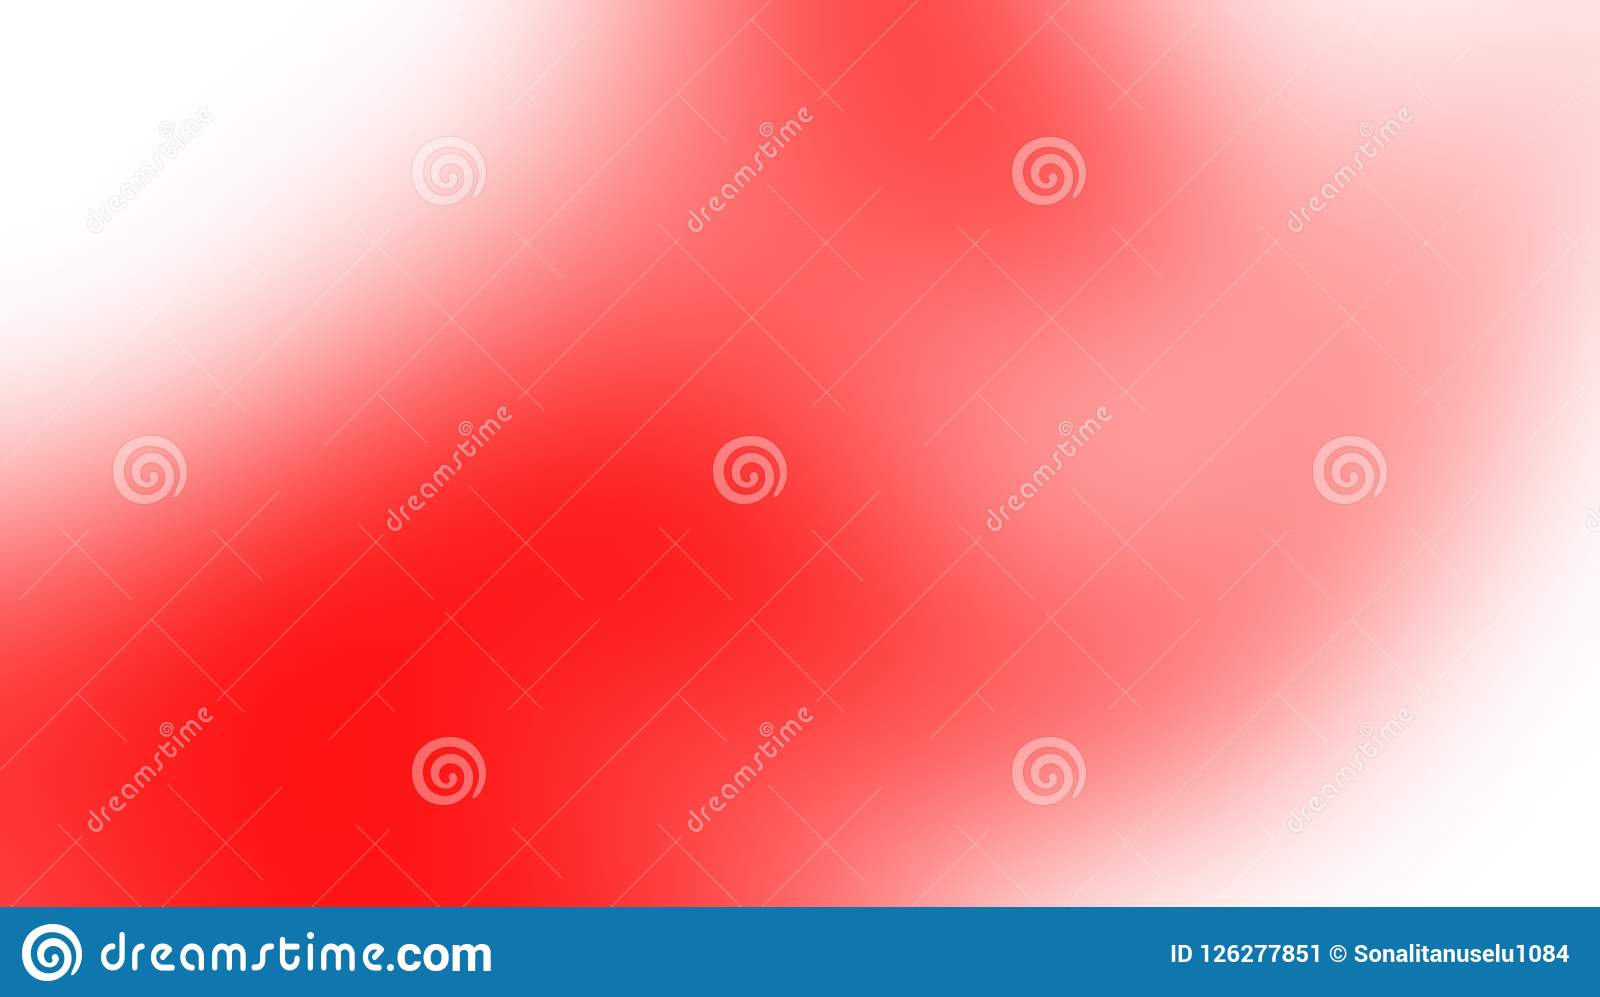 red and white blurred shaded background stock illustration illustration of christmas abstract 126277851 https www dreamstime com red white blurred shaded background wallpaper vivid color vector illustration red white blurred shaded background image126277851